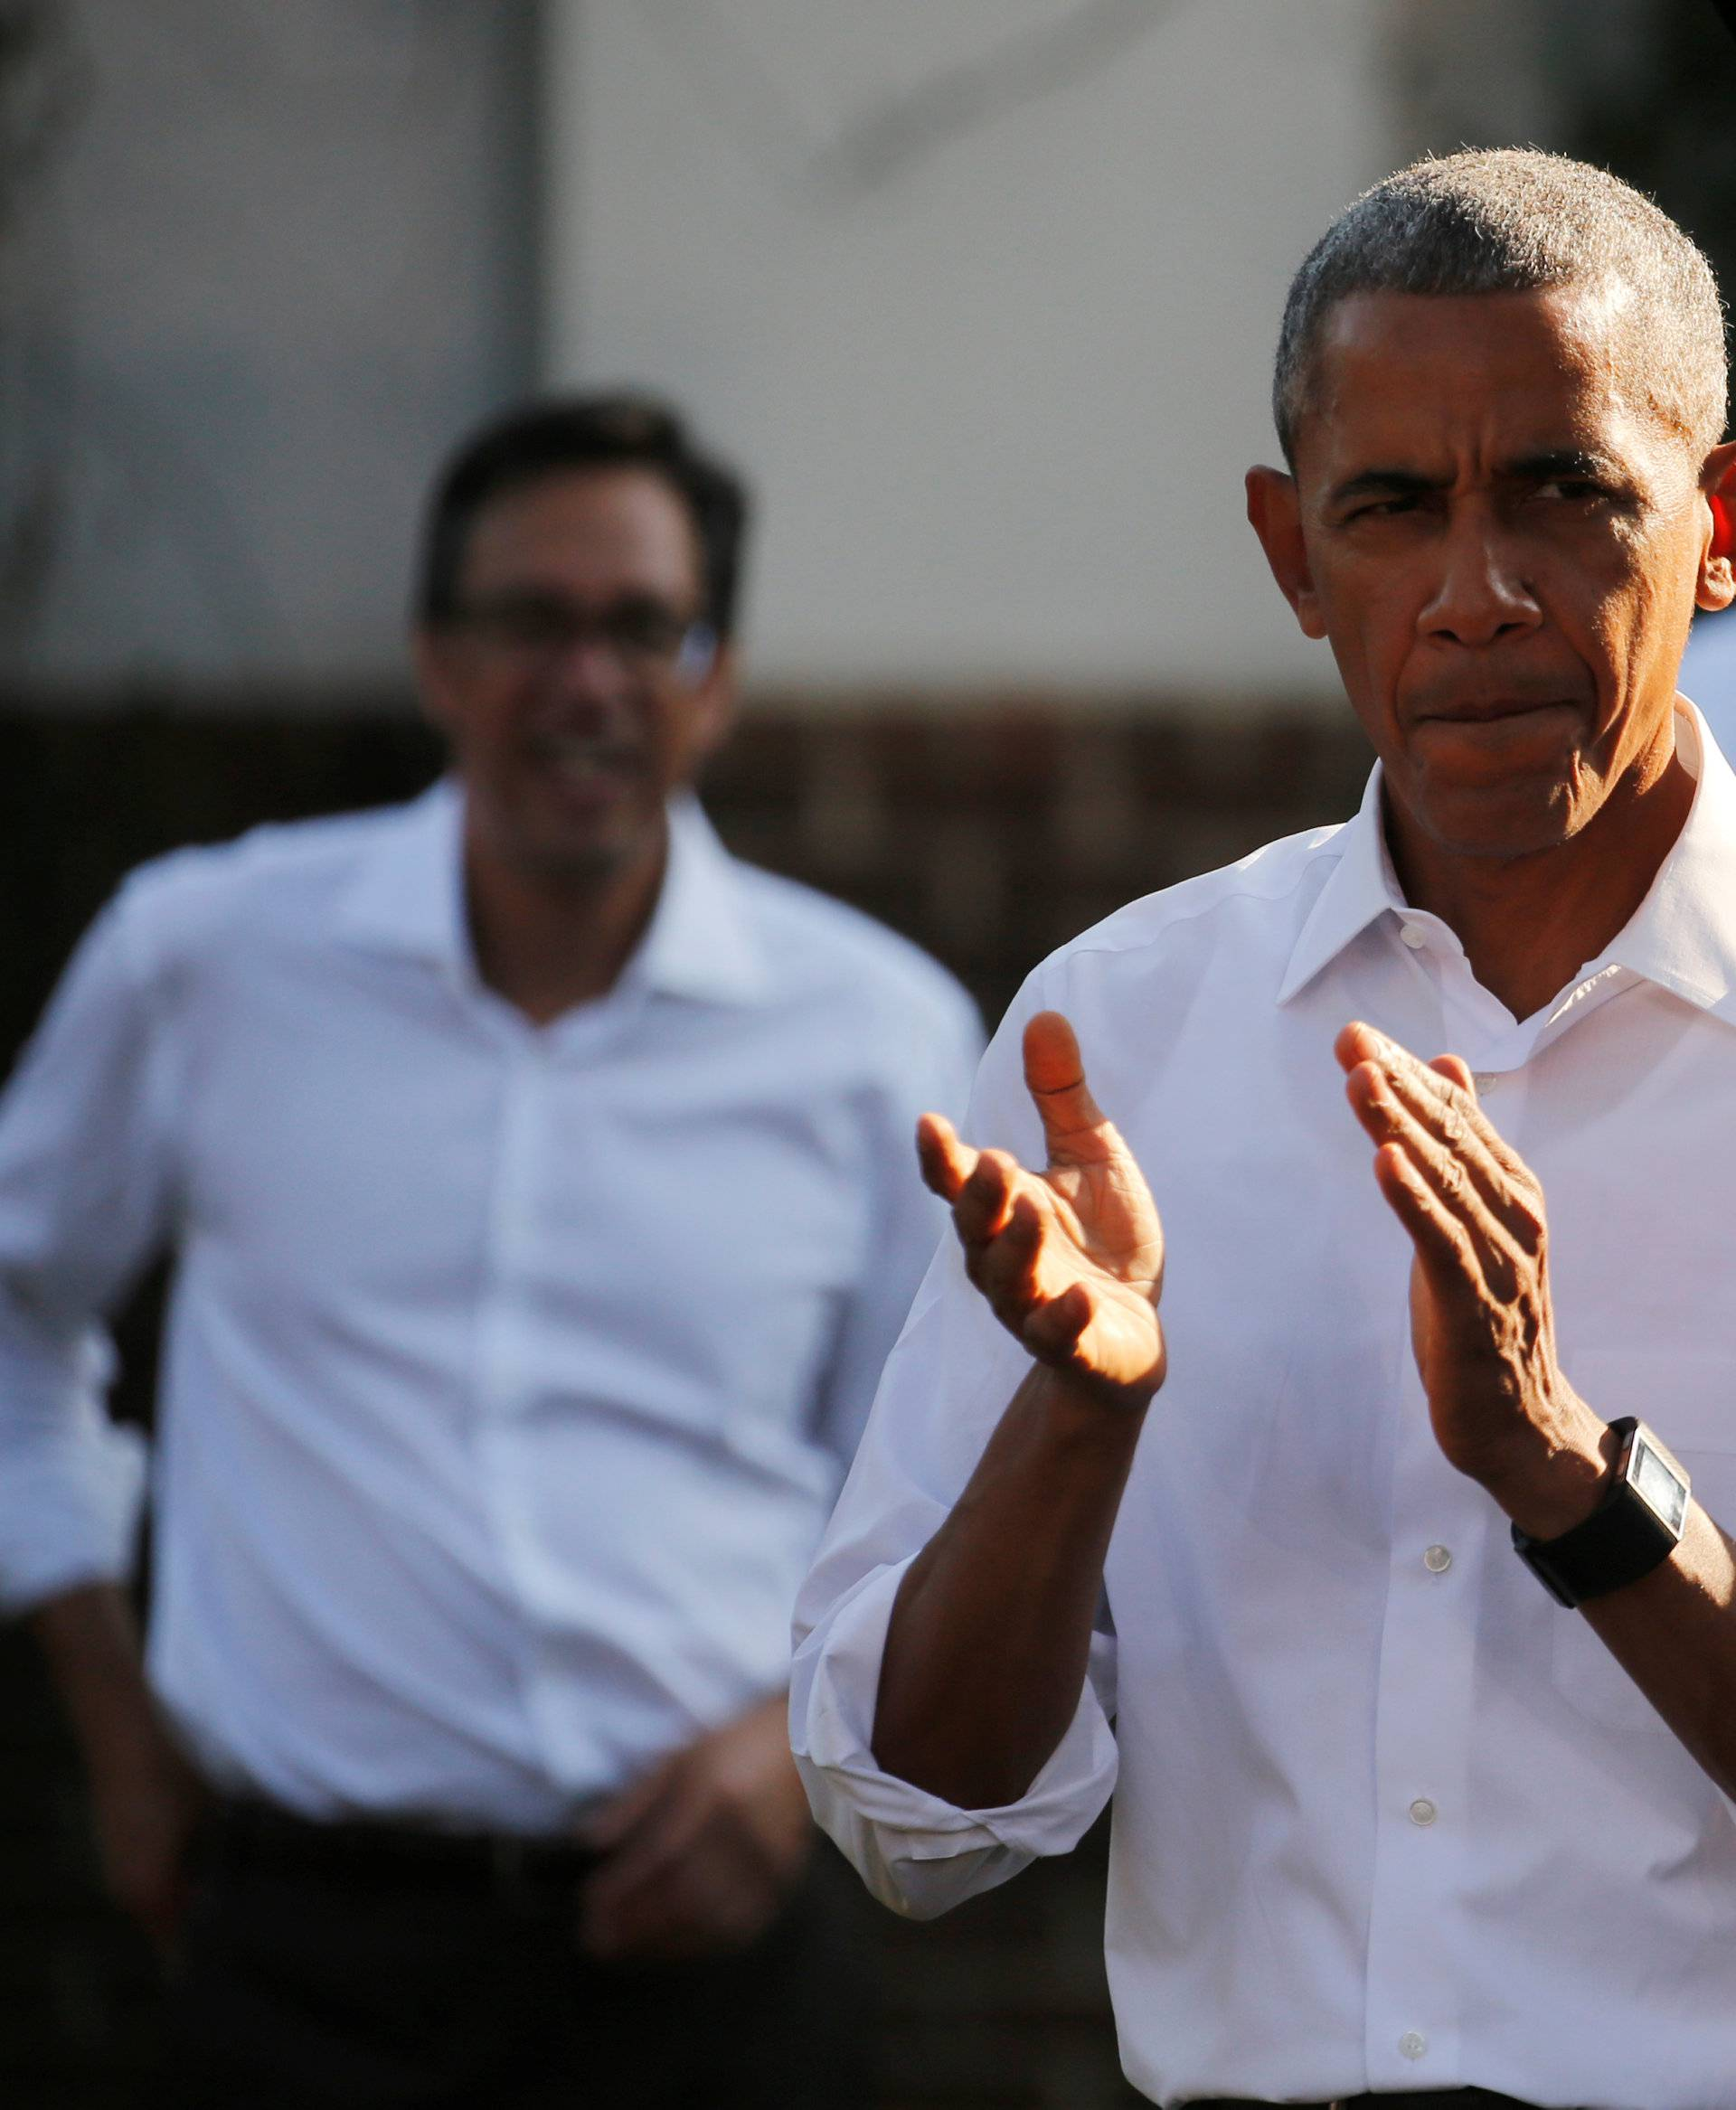 Obama takes the stage to deliver remarks at a campaign event in Chapel Hill, North Carolina